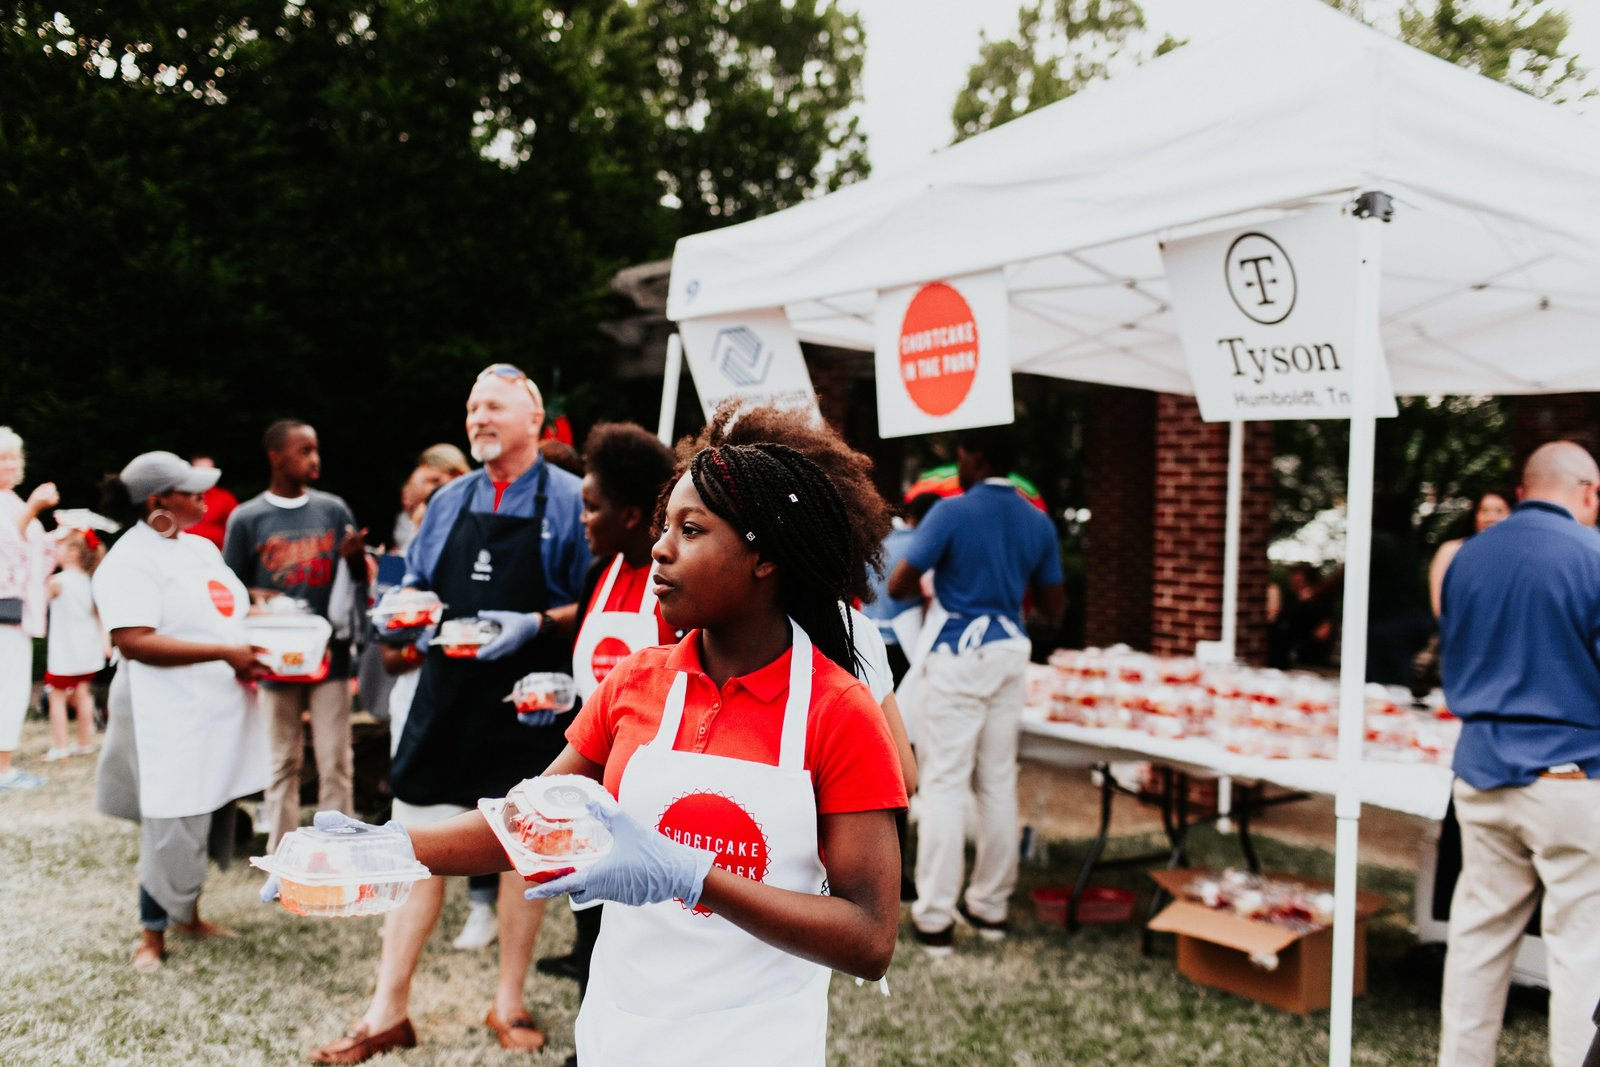 2019 West Tennessee Strawberry Festival - Shortcake in the park - 11